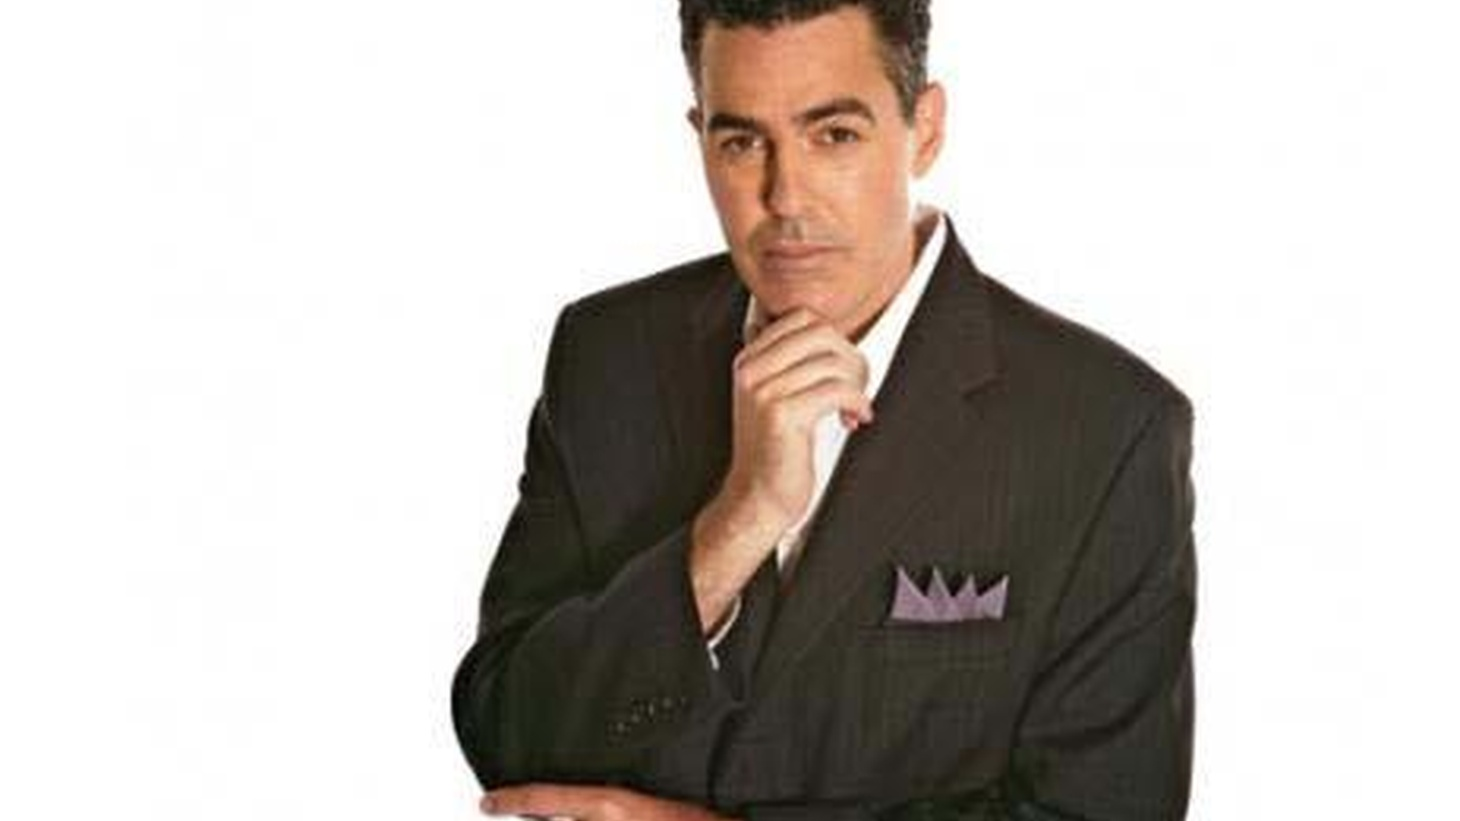 Comedian and radio personality Adam Carolla talks with Evan Kleiman about his love of pie.